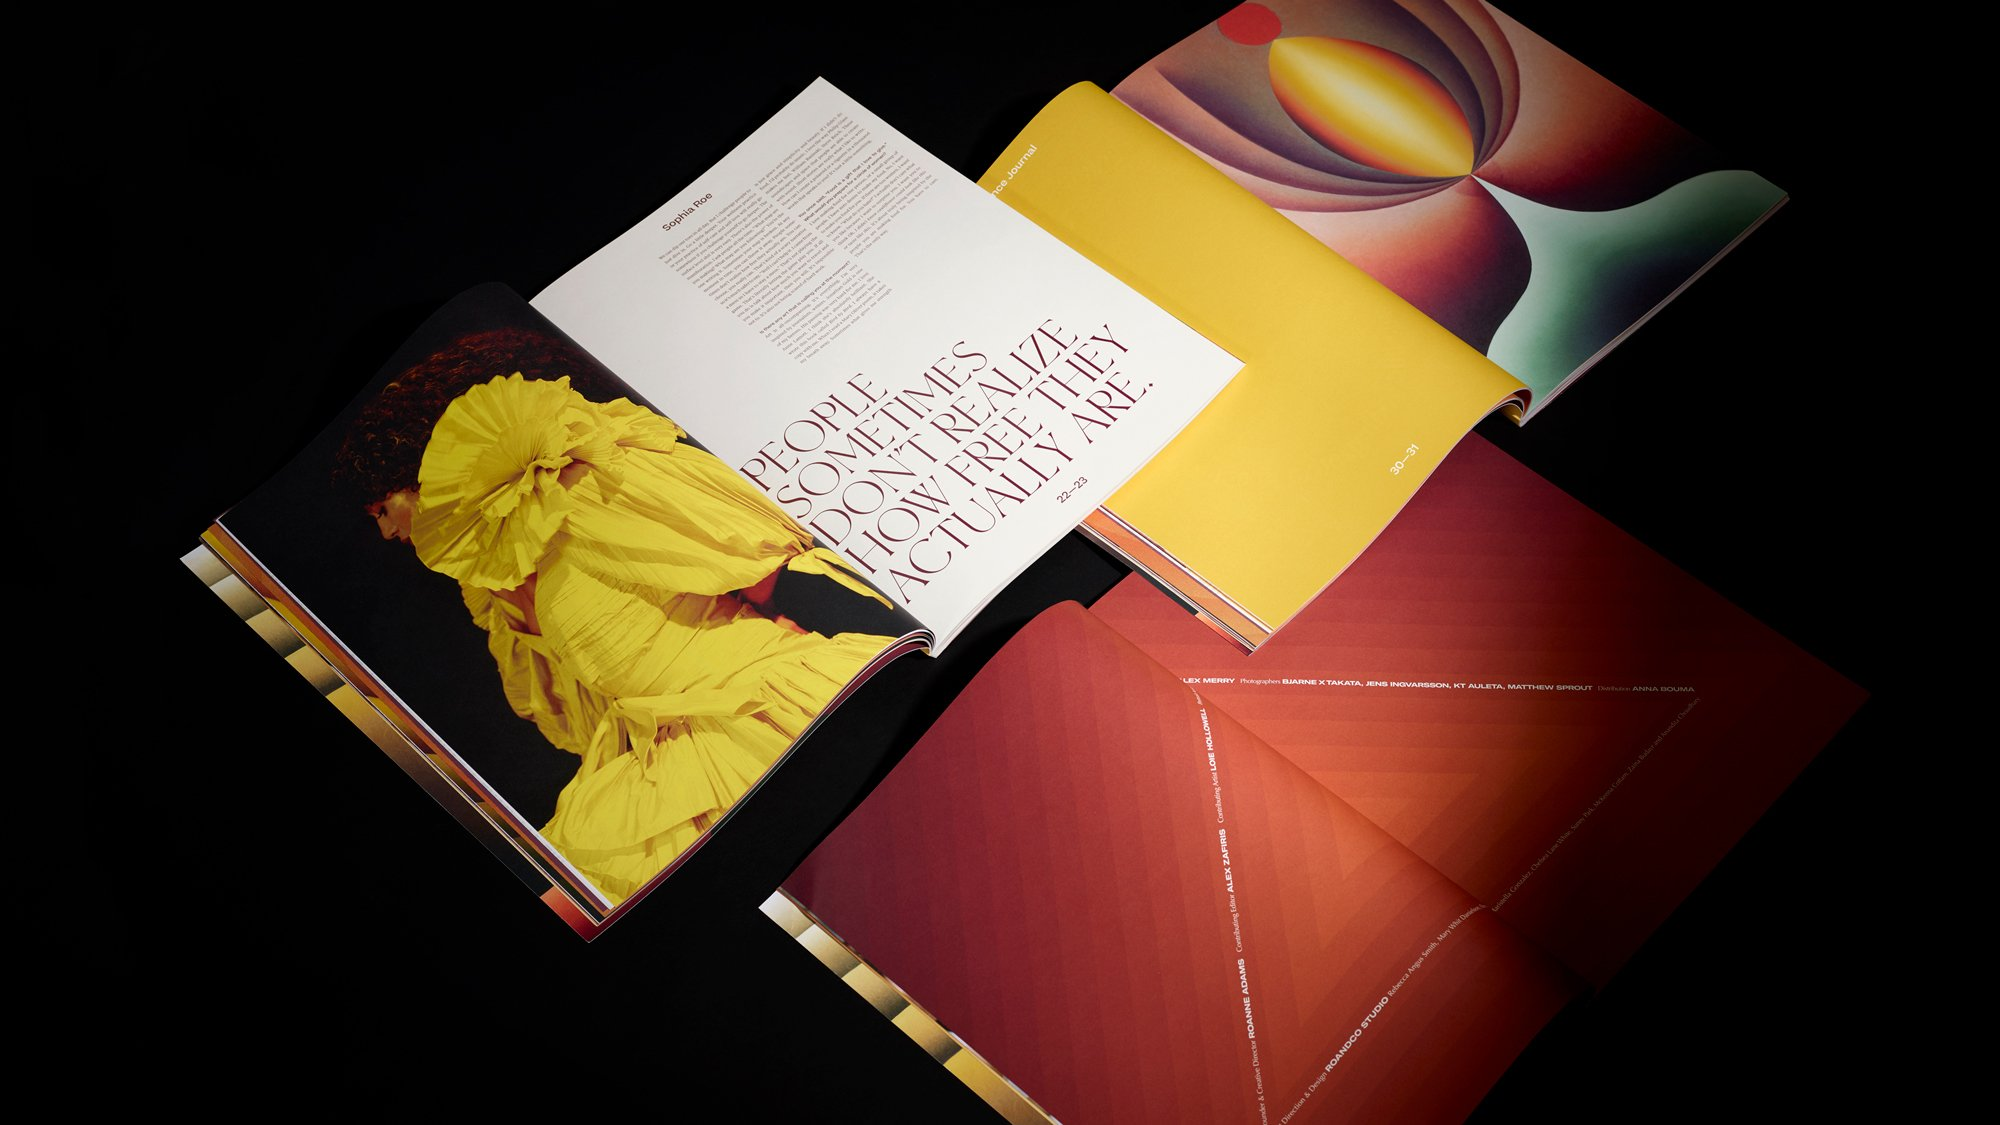 Romance Journal Issue 03 interior spreads. Romance Journal issue 03 cover – Creation. Publication design, art direction, print design, edited by RoAndCo